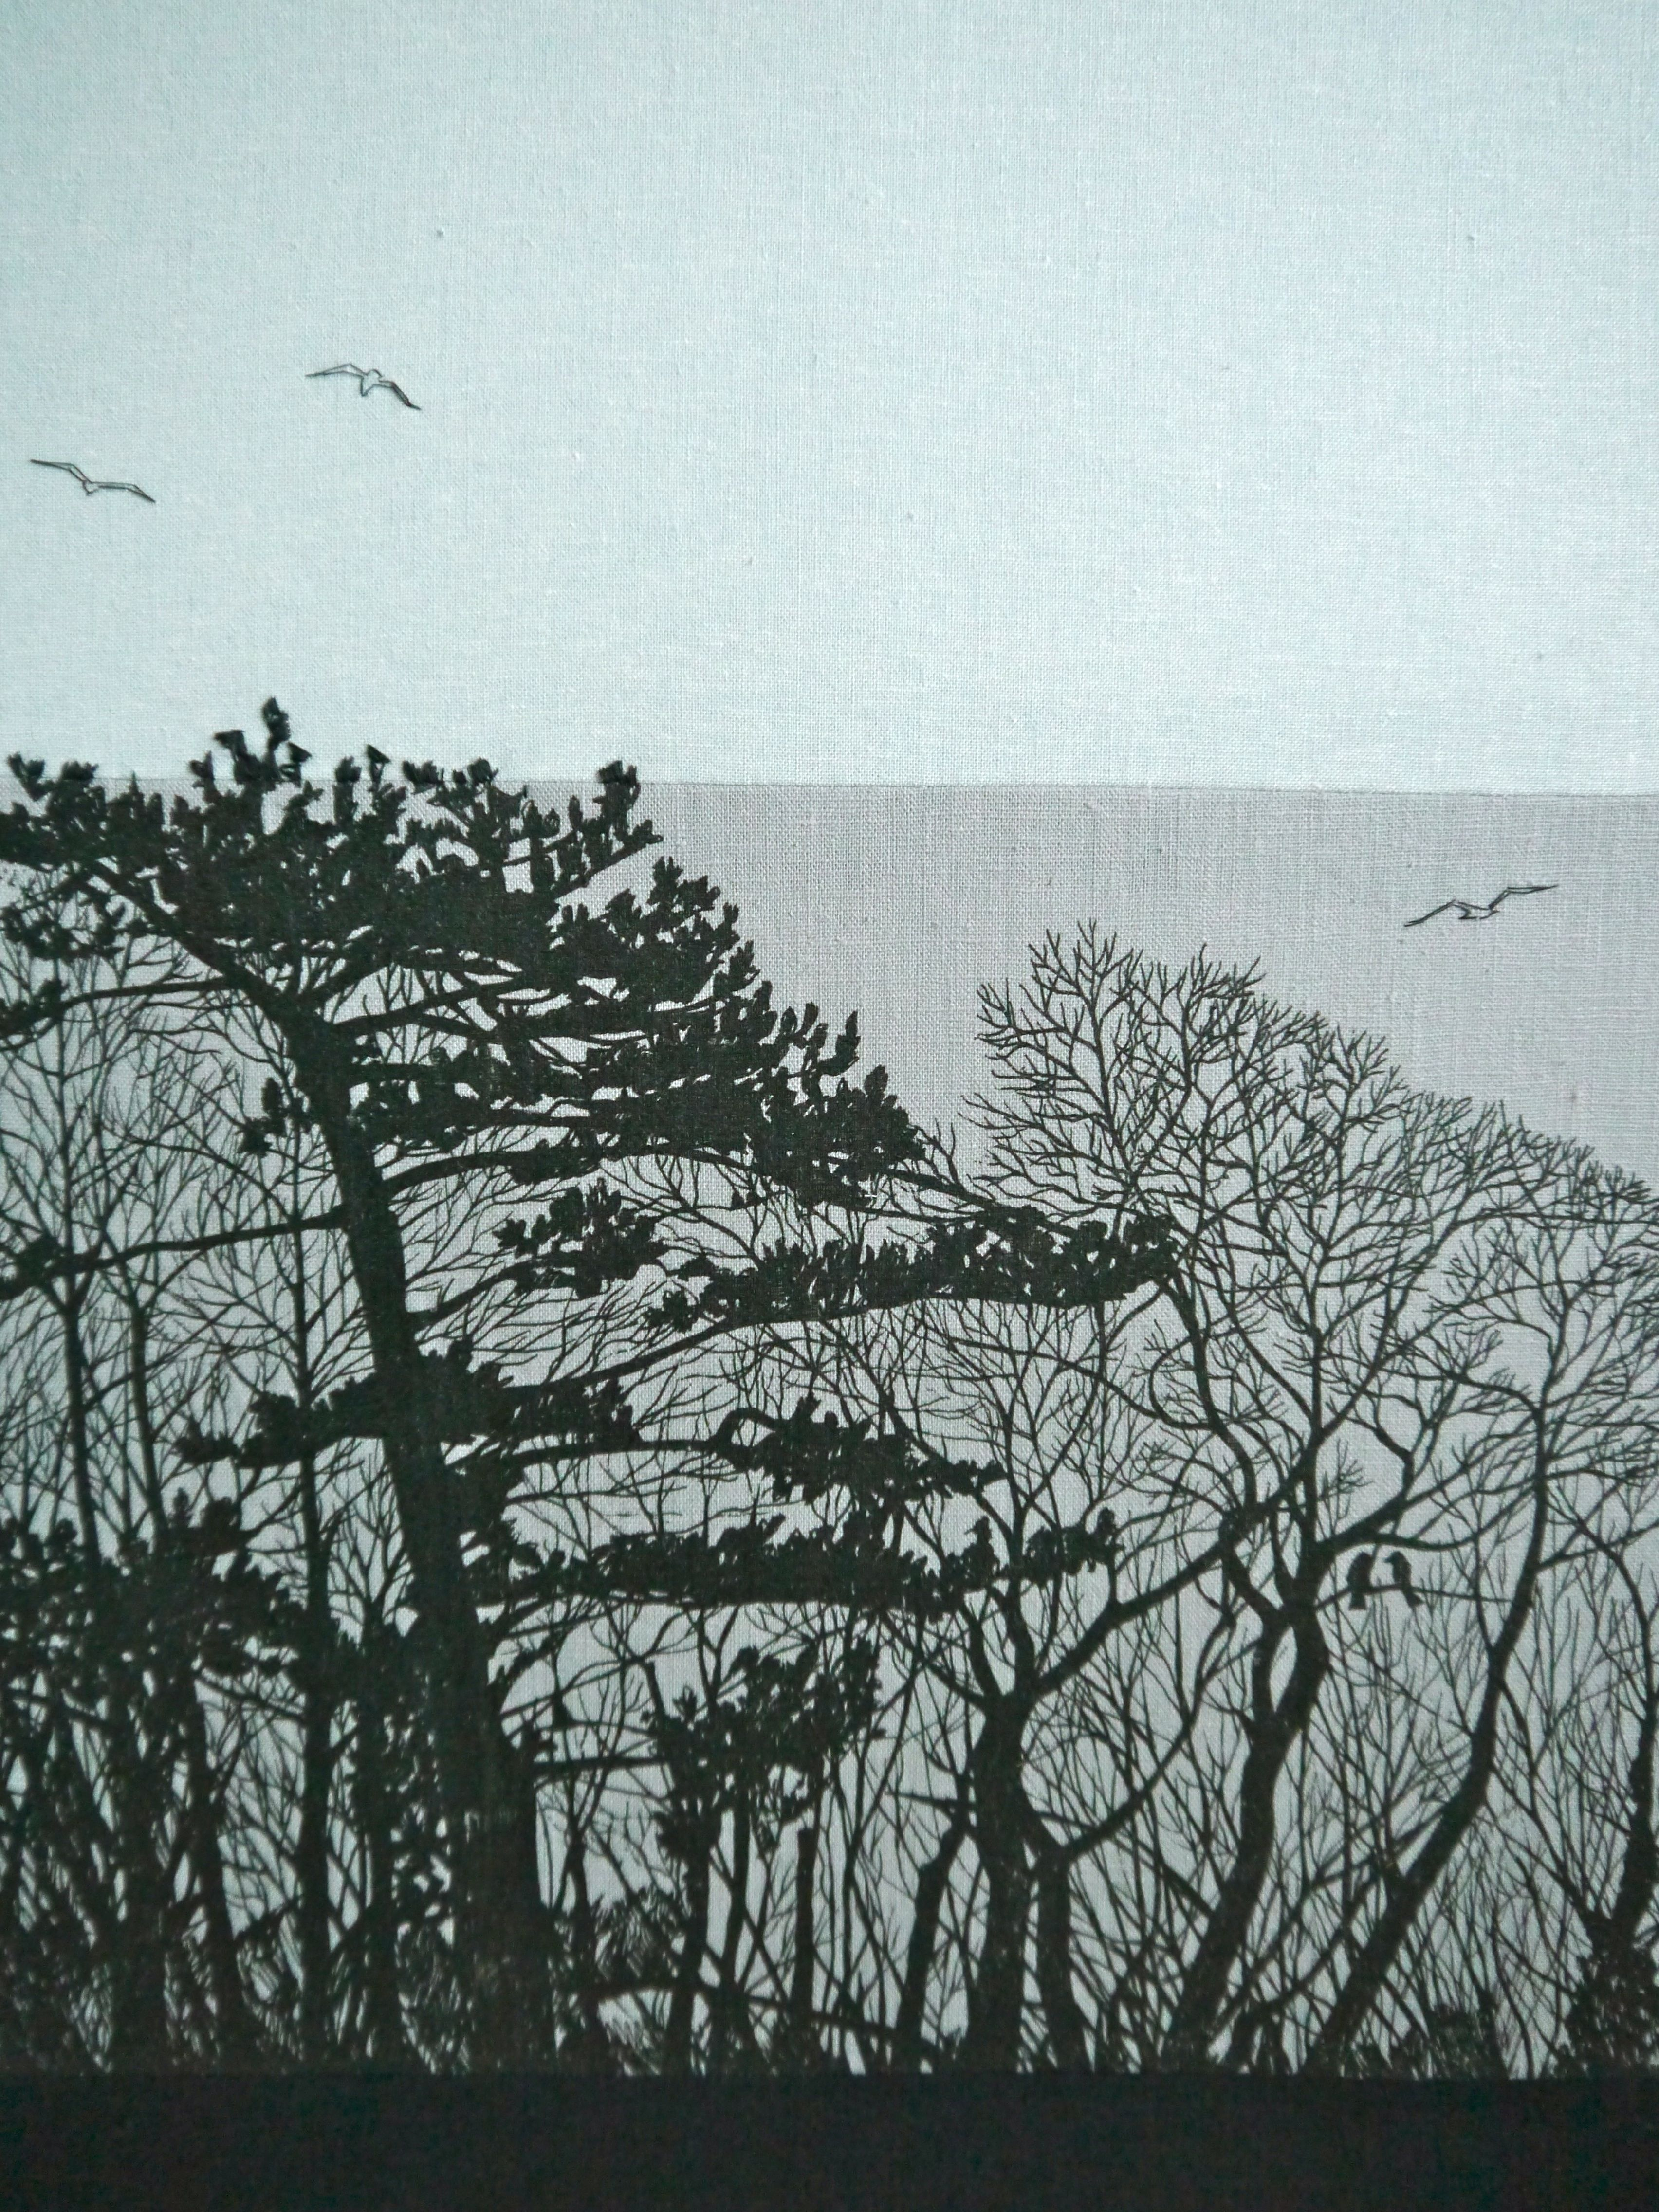 Detail of a commission looking out over the sea from a